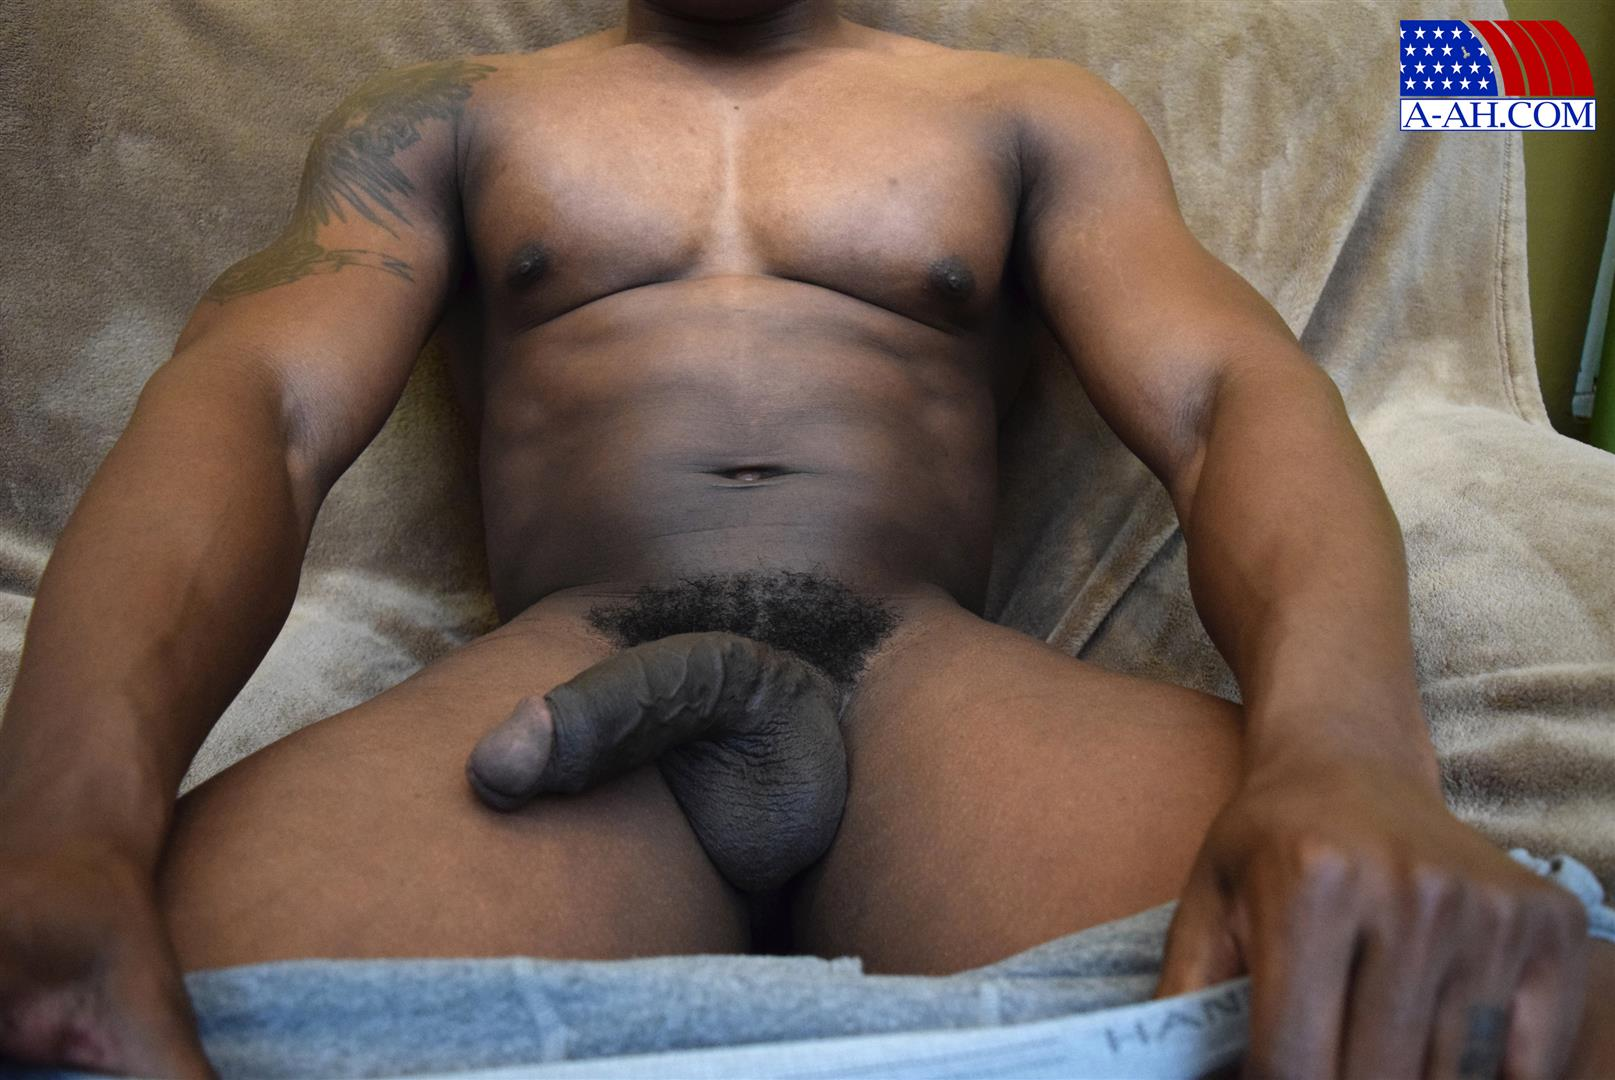 All American Heroes Sean Muscle Navy Petty Officer Jerking Big Black Cock Amateur Gay Porn 09 Big Muscular Black Navy Petty Officer Jerking His Big Black Cock